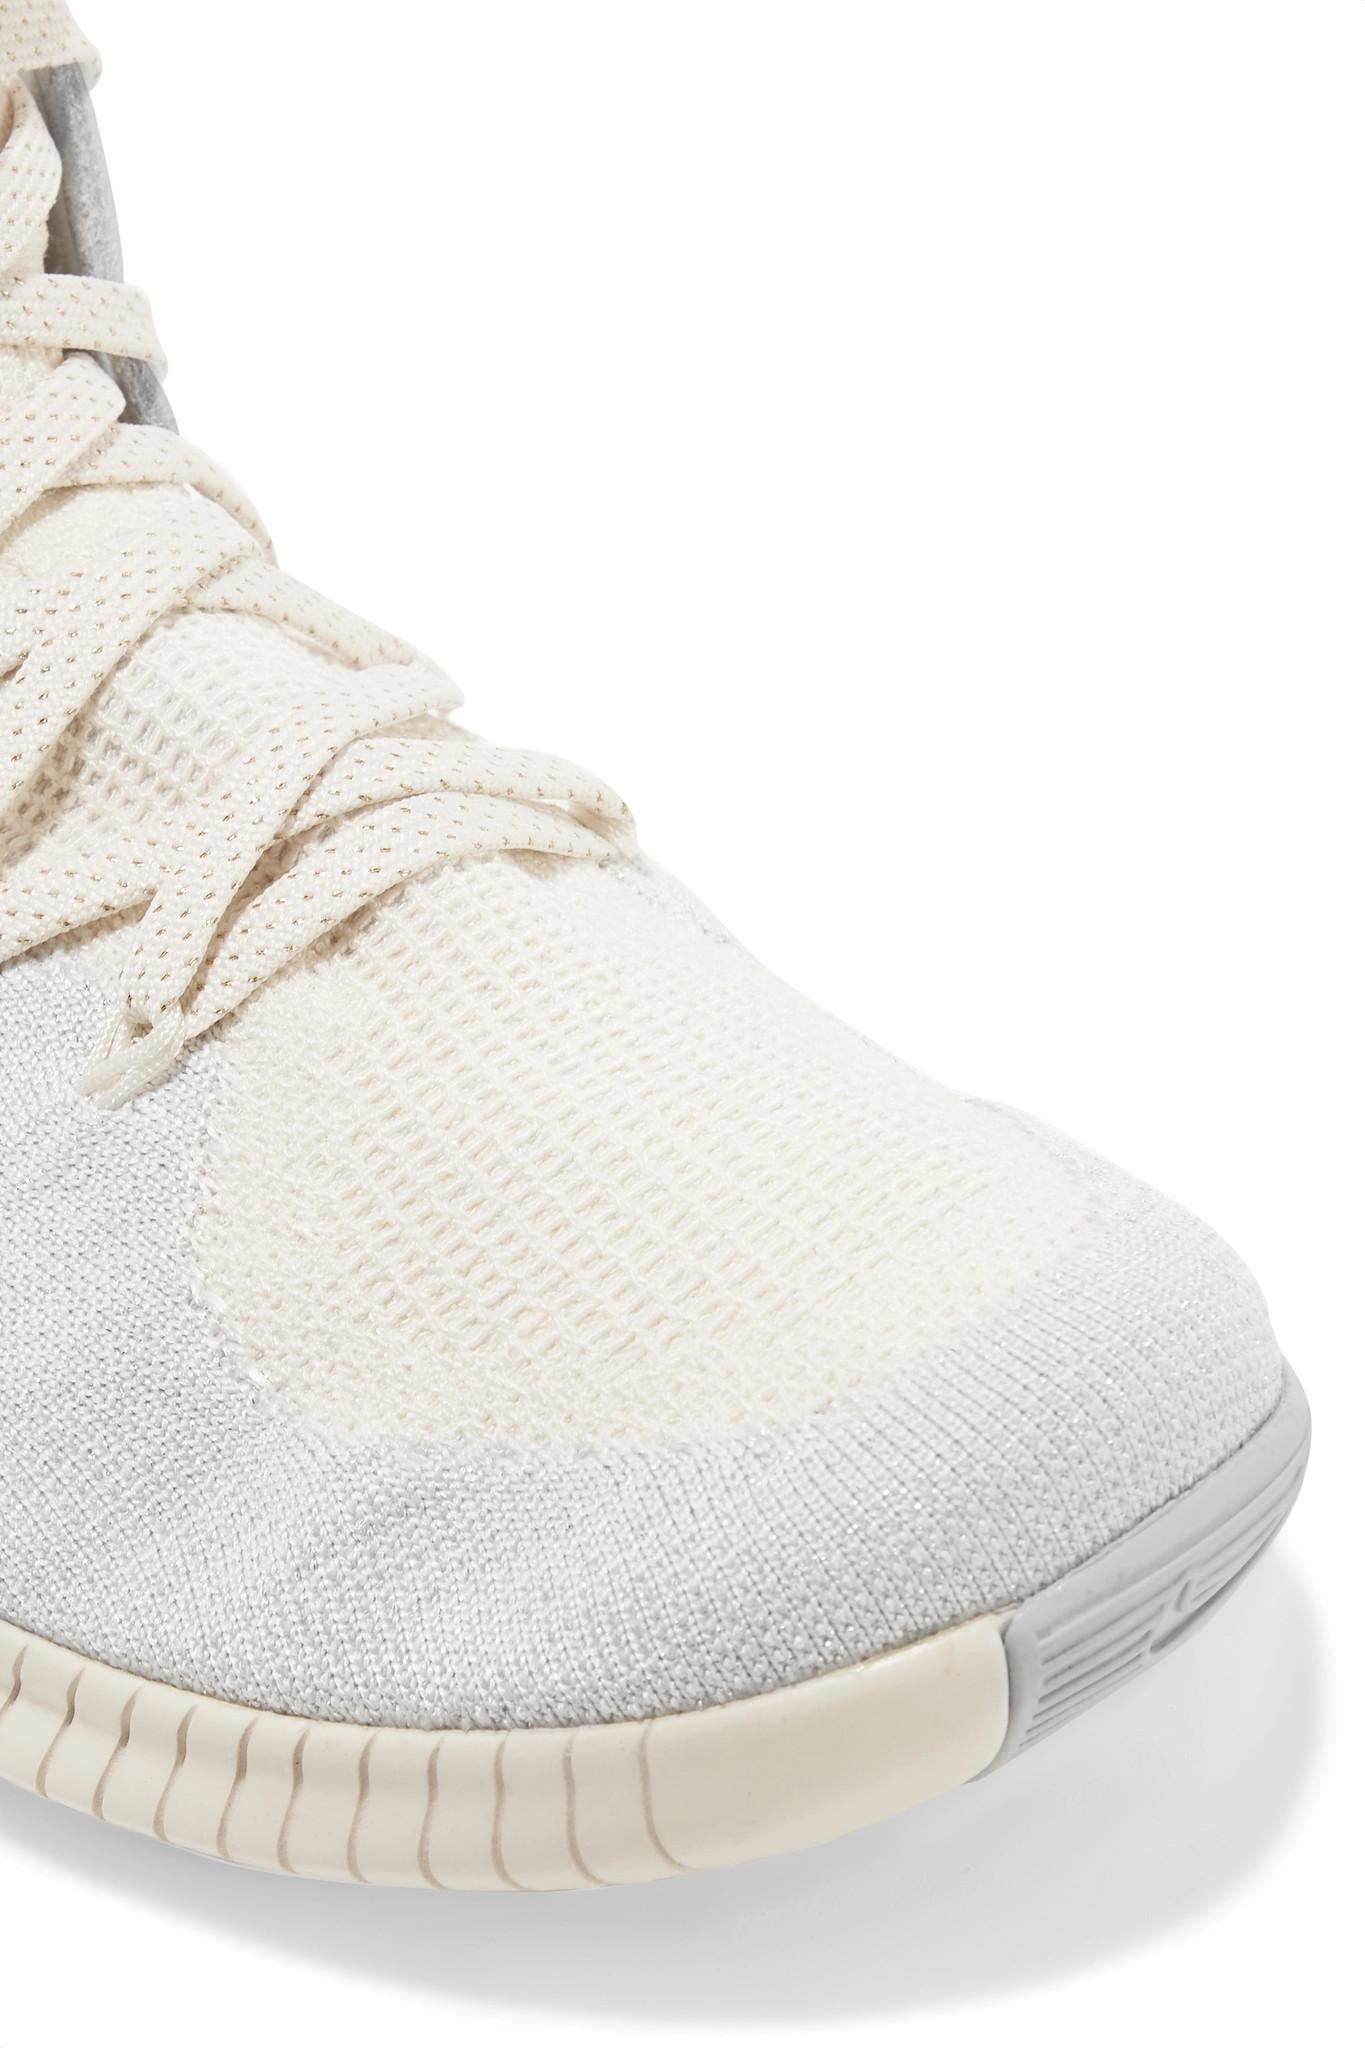 6cbcaa1653f4 Nike - Multicolor Free Tr 3 Champagne Crinkled Leather-trimmed Flyknit  Sneakers - Lyst. View fullscreen